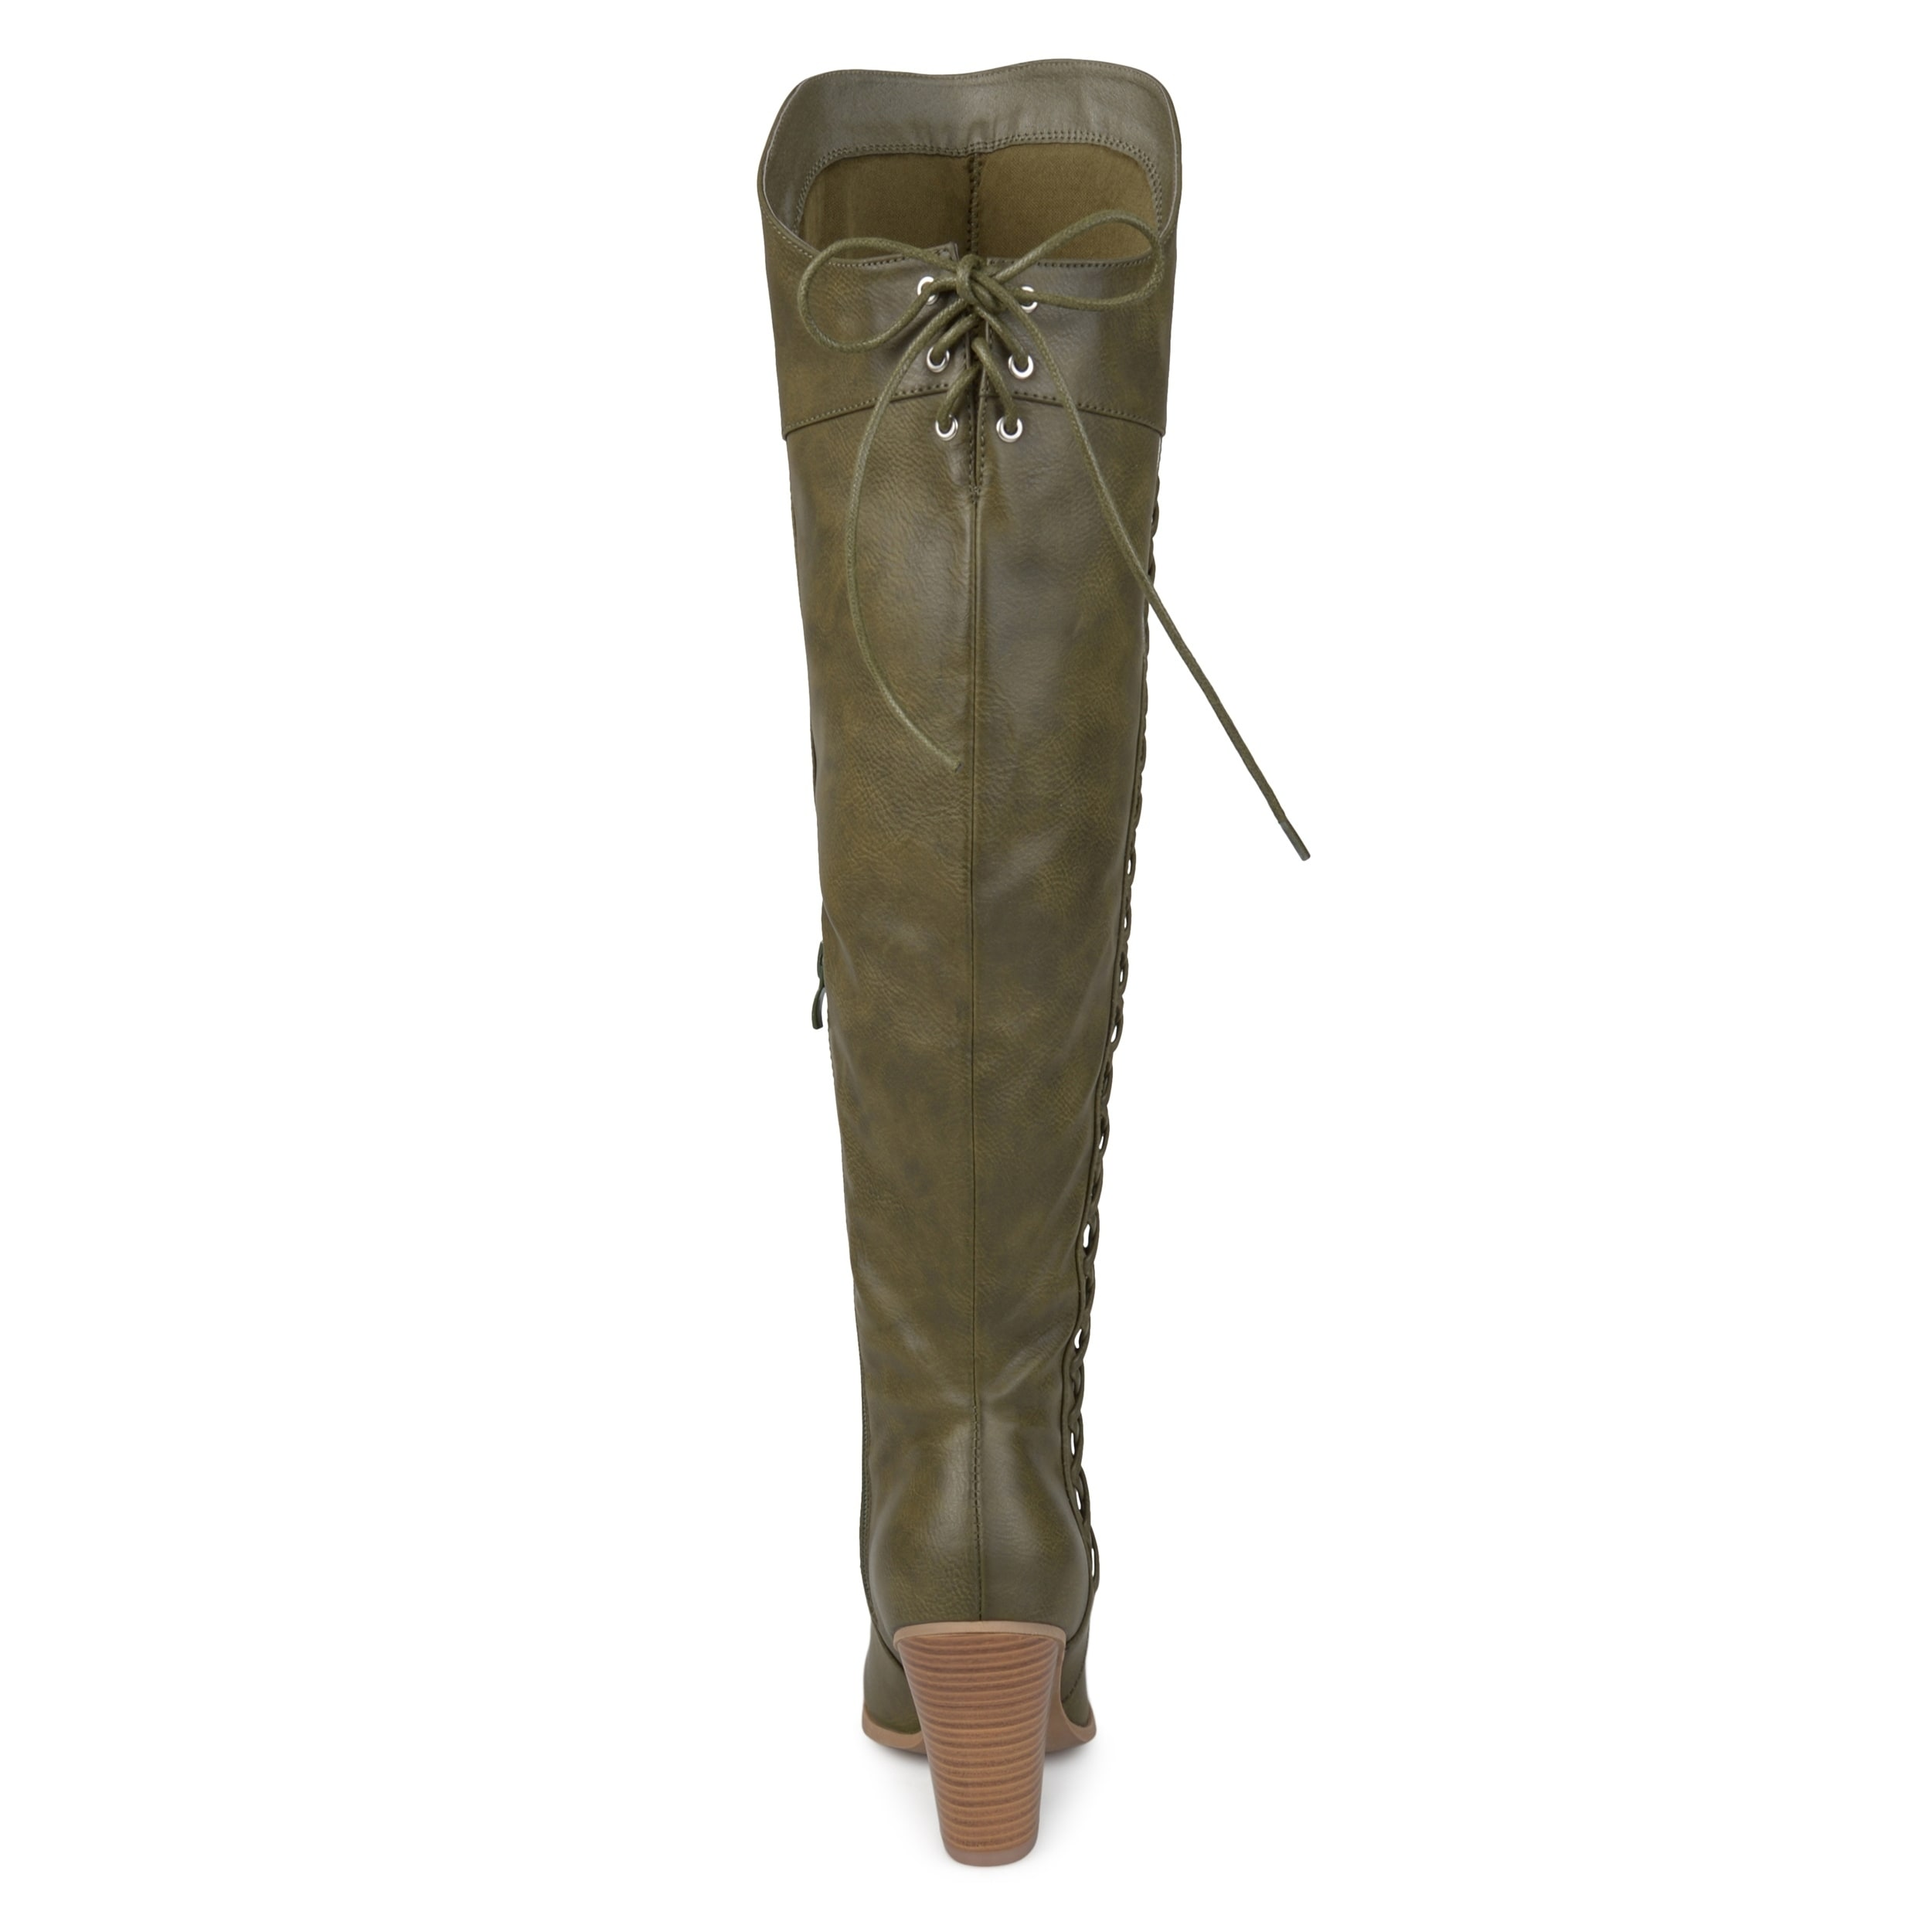 51bf5ad609b Shop Journee Collection Women s  Spritz  Over-the-knee Boots - Free  Shipping Today - Overstock - 17351951